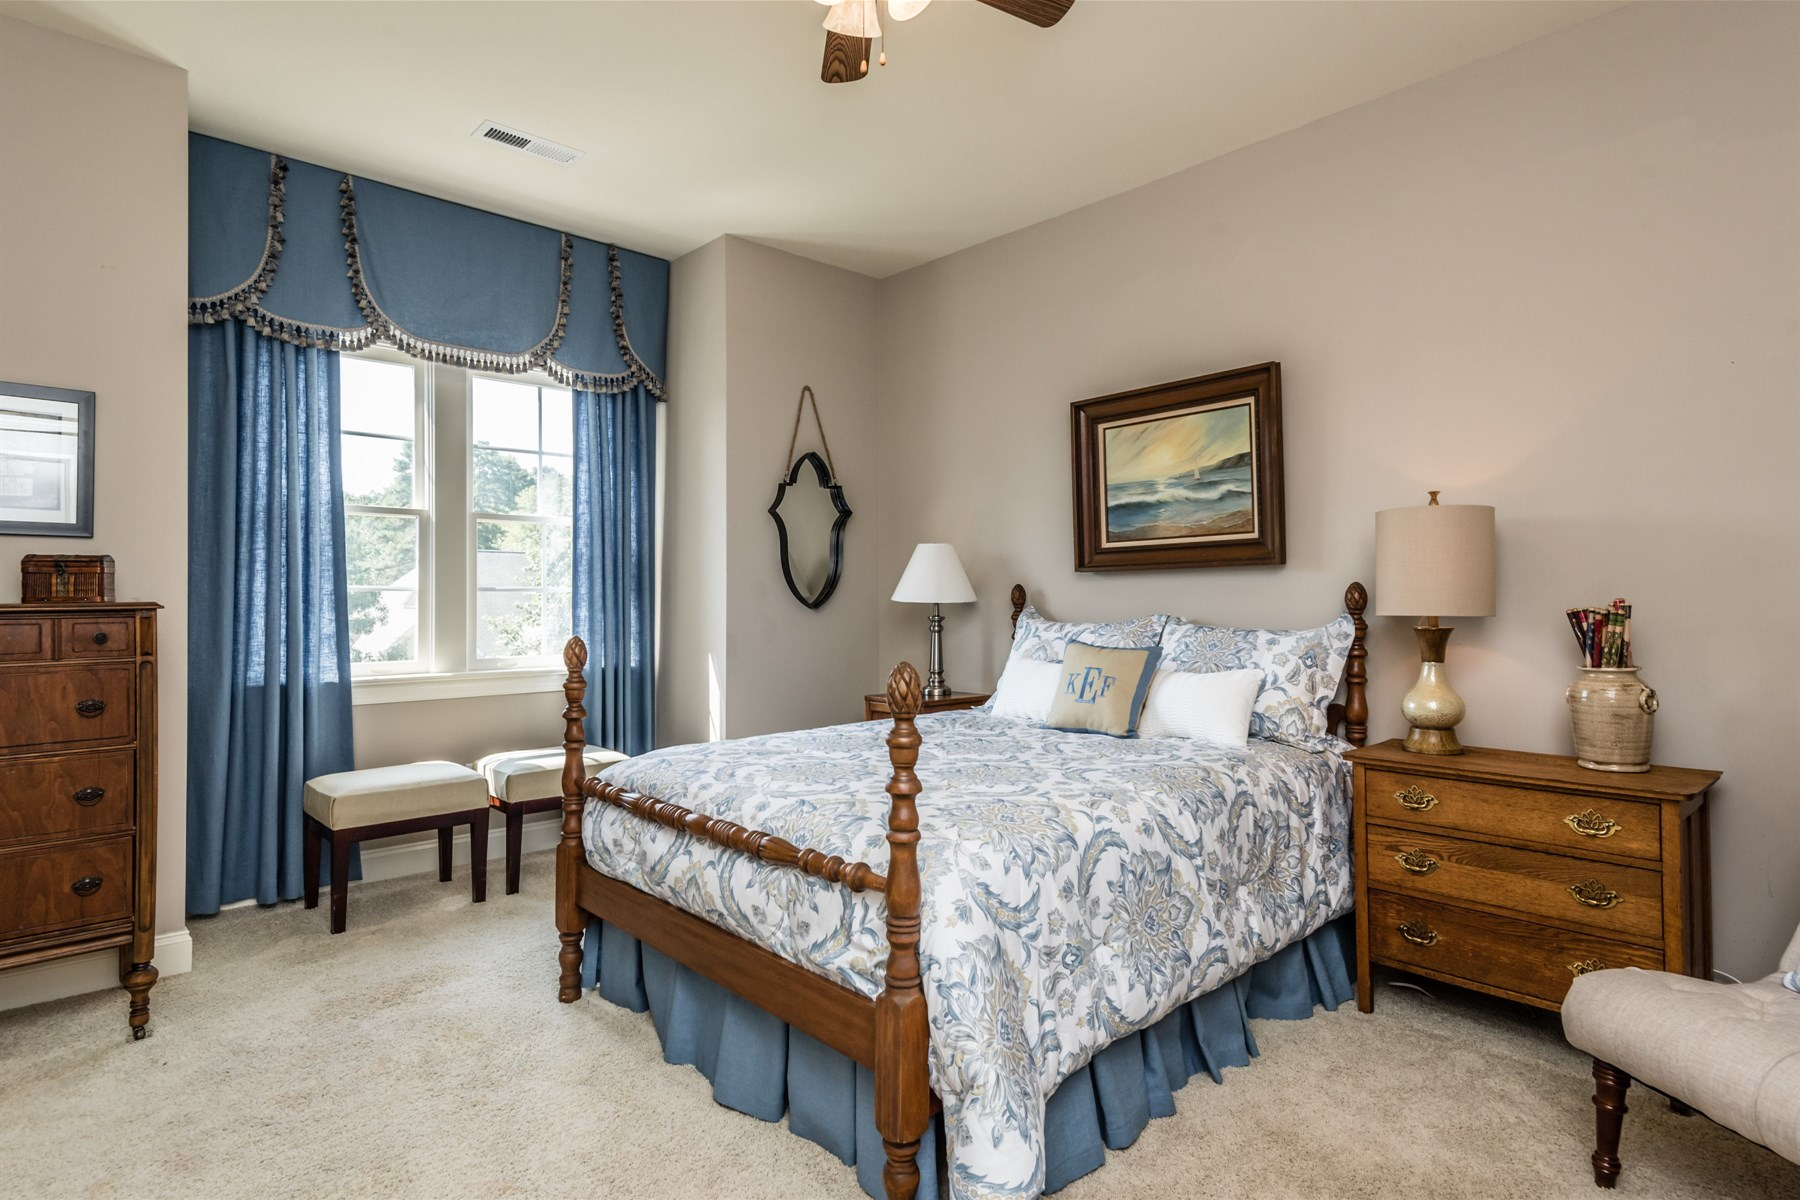 Additional photo for property listing at Old Stone Crossing 8214 Stonetown Ave 罗利, 北卡罗来纳州 27612 美国